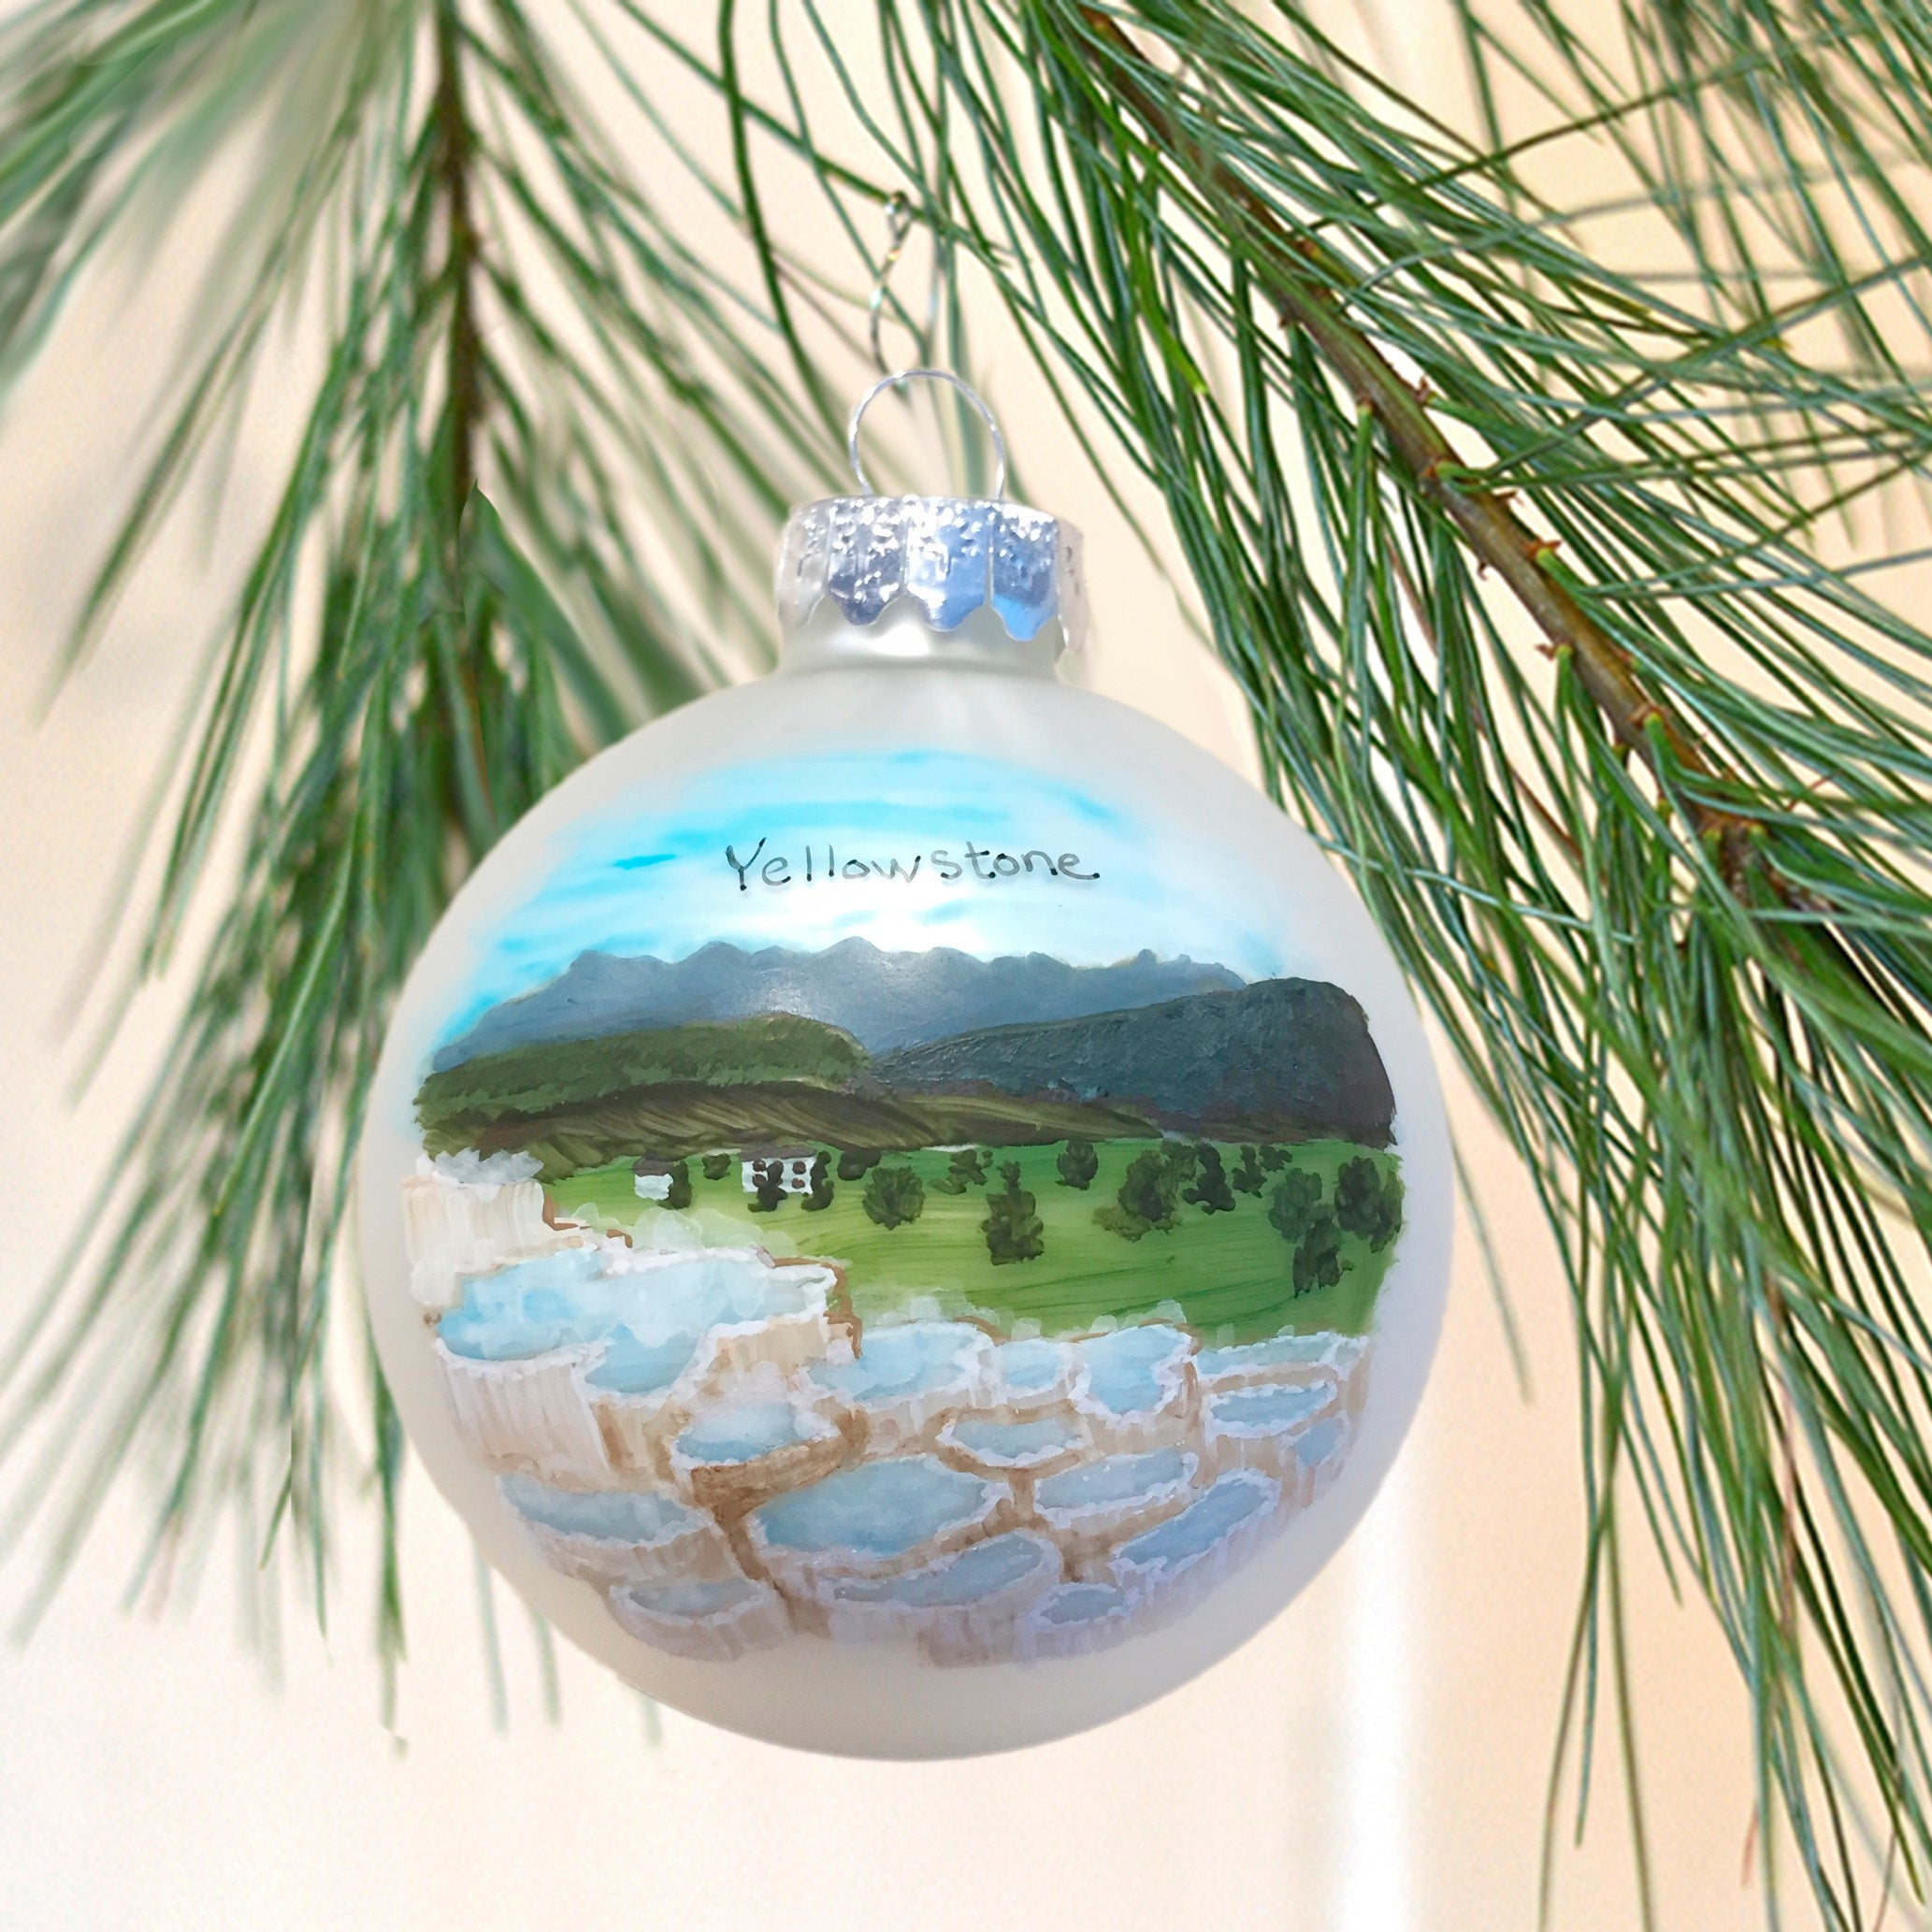 Yellowstone Mammoth Hot Springs Ornament